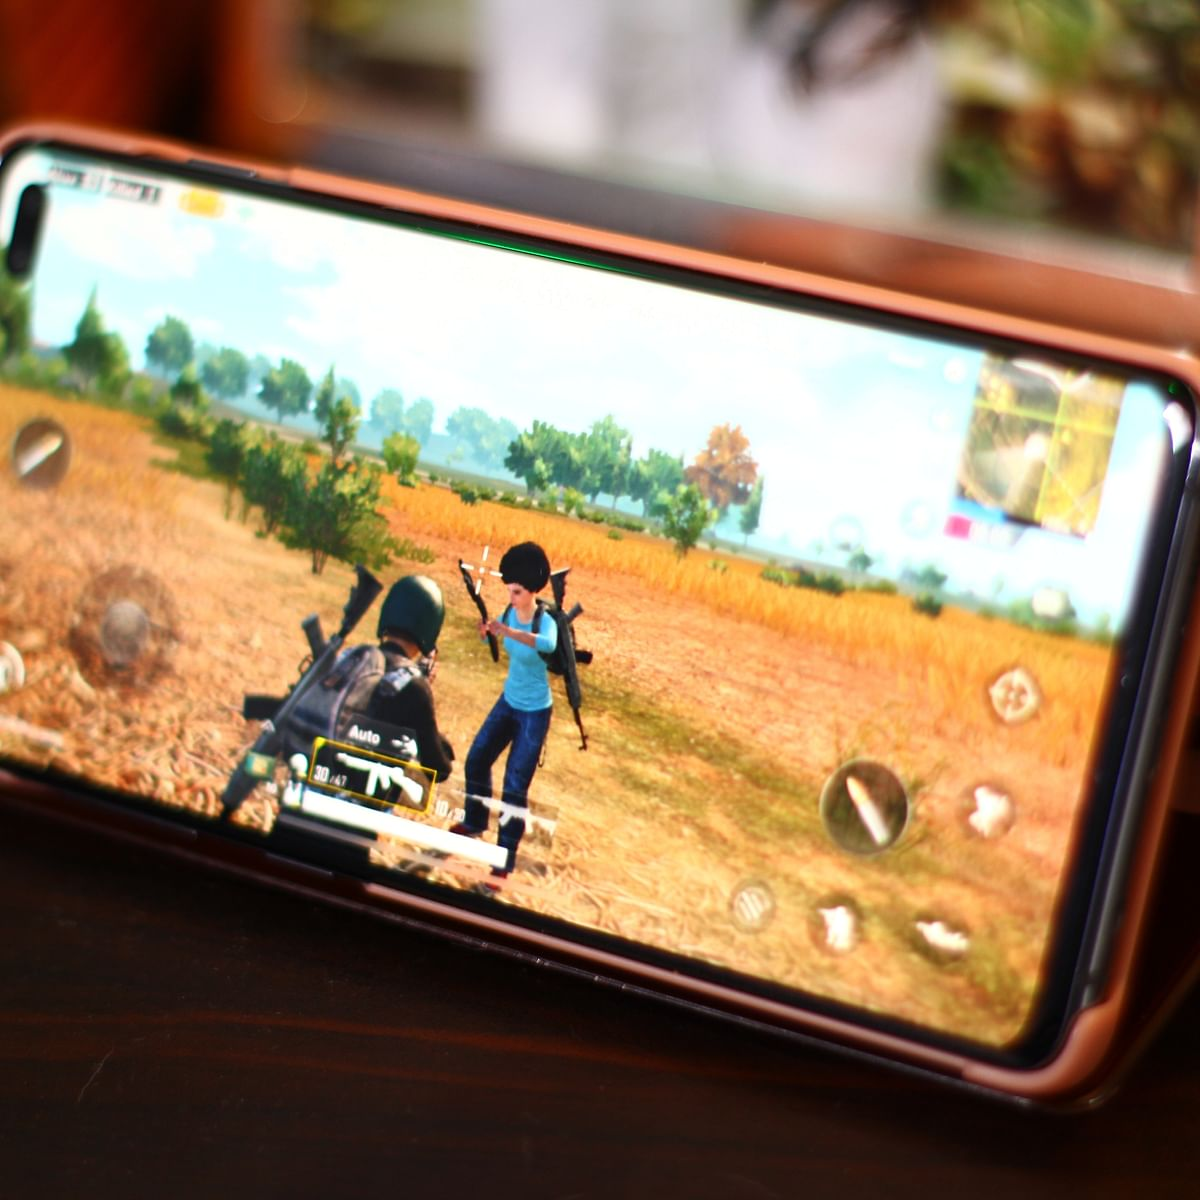 PUBG India Relaunch: Release date, subsidiary, gameplay details, and everything else we know